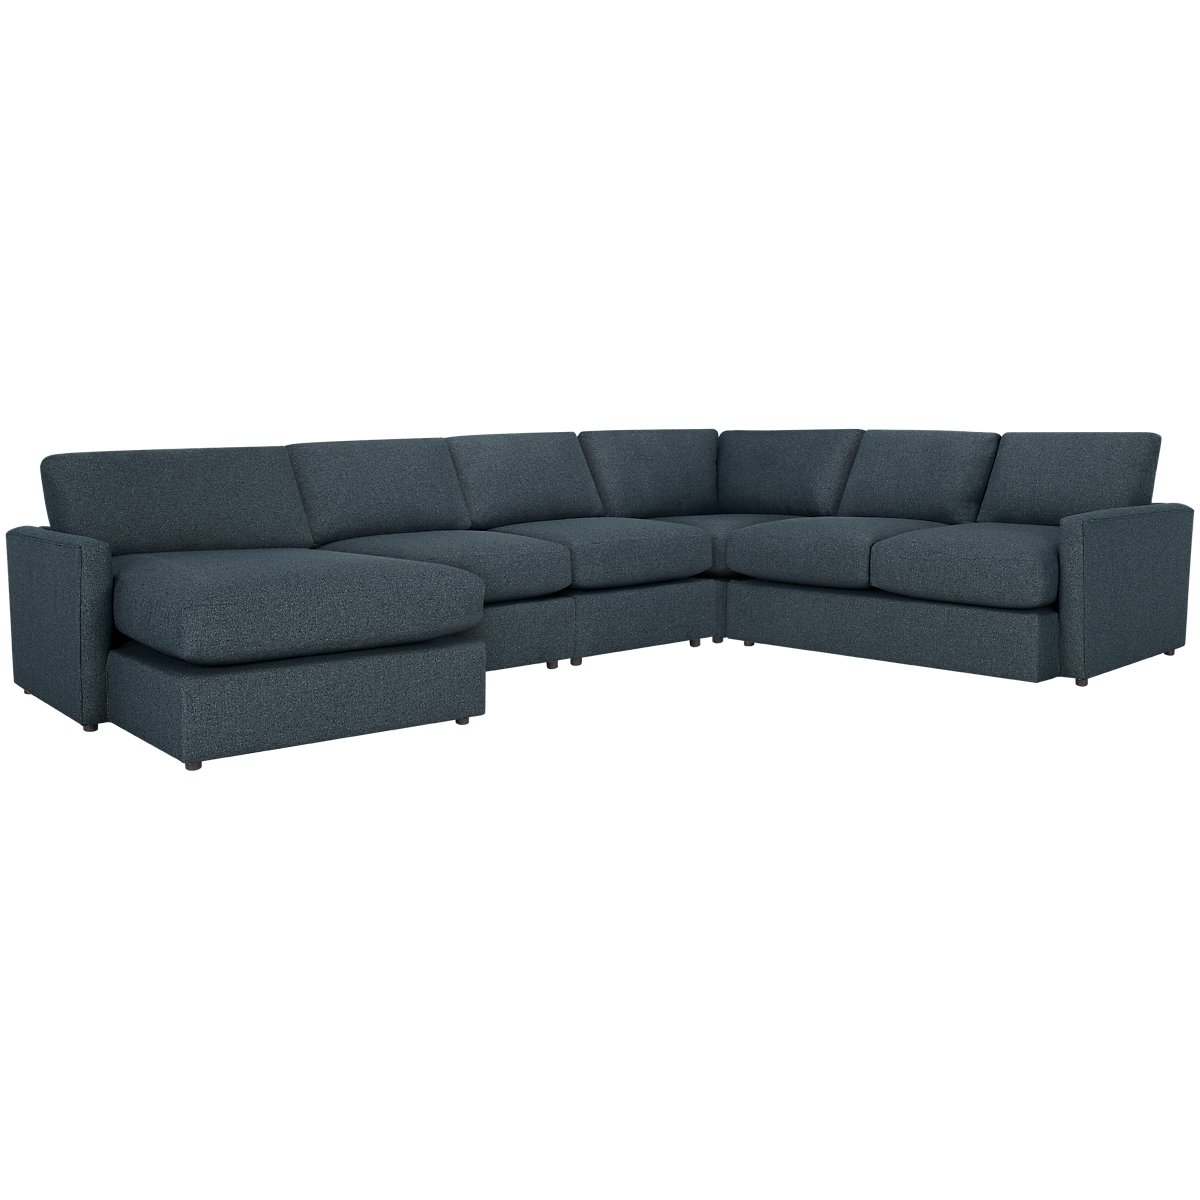 Noah Dark Blue Fabric Large Left Chaise Sectional